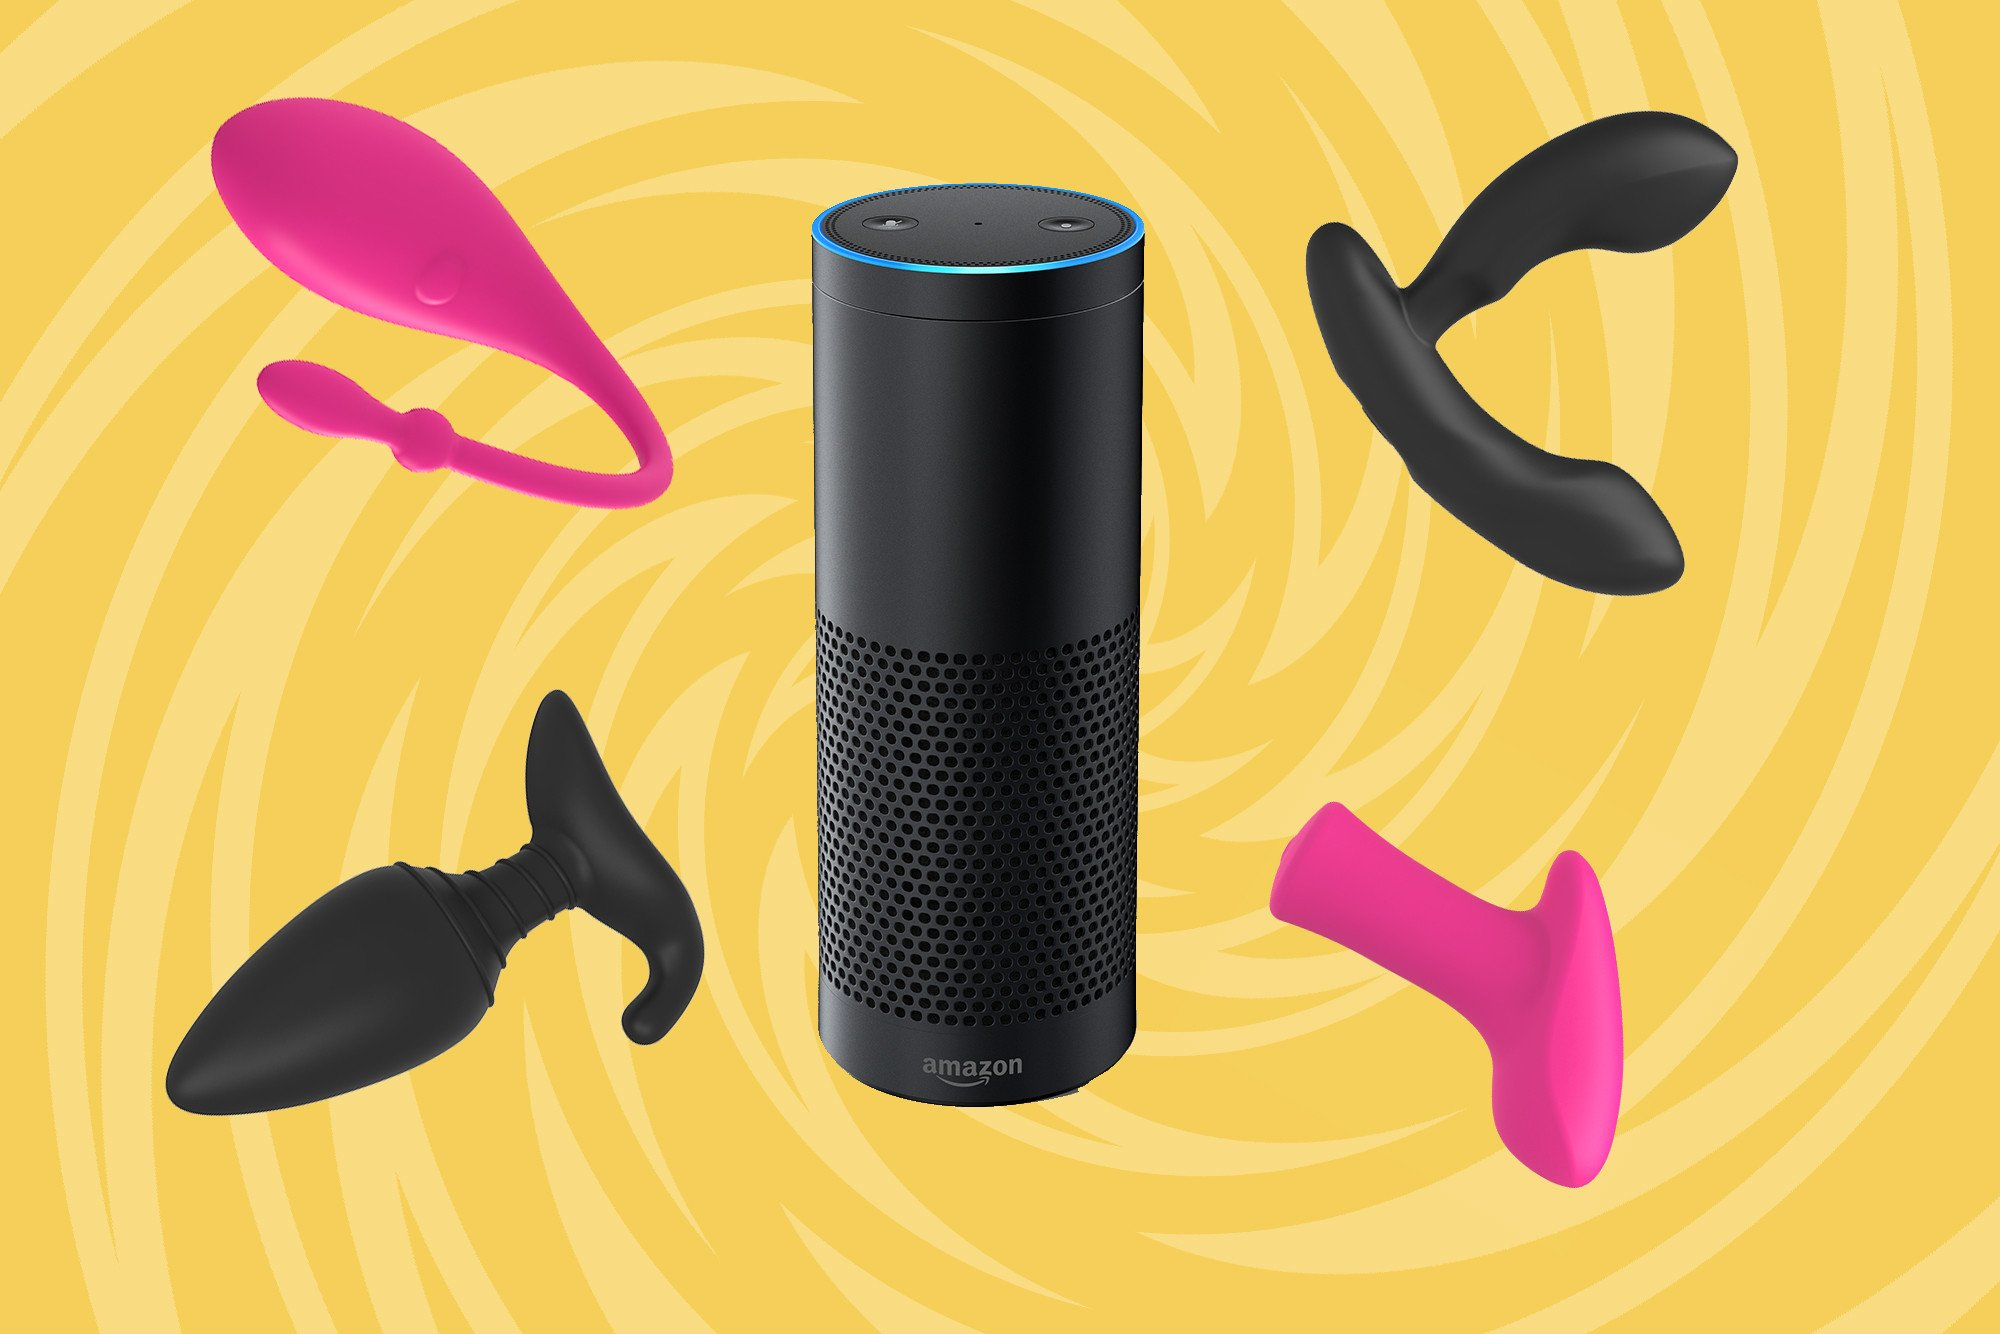 You can soon have 'sex' with Amazon's Alexa